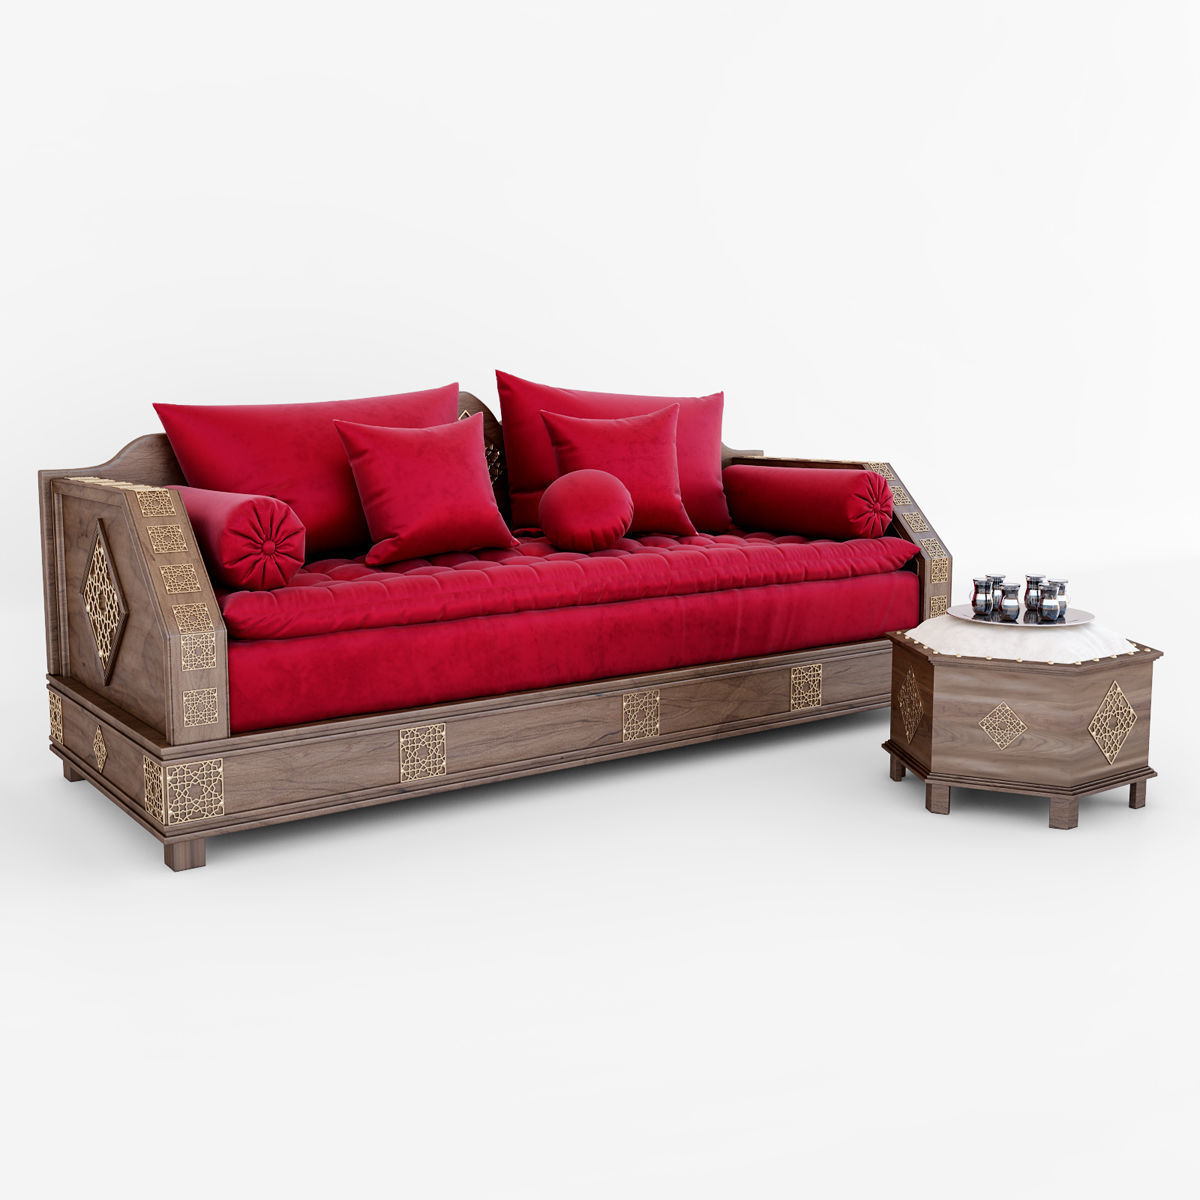 Moroccan Sofa Set Model Max Obj